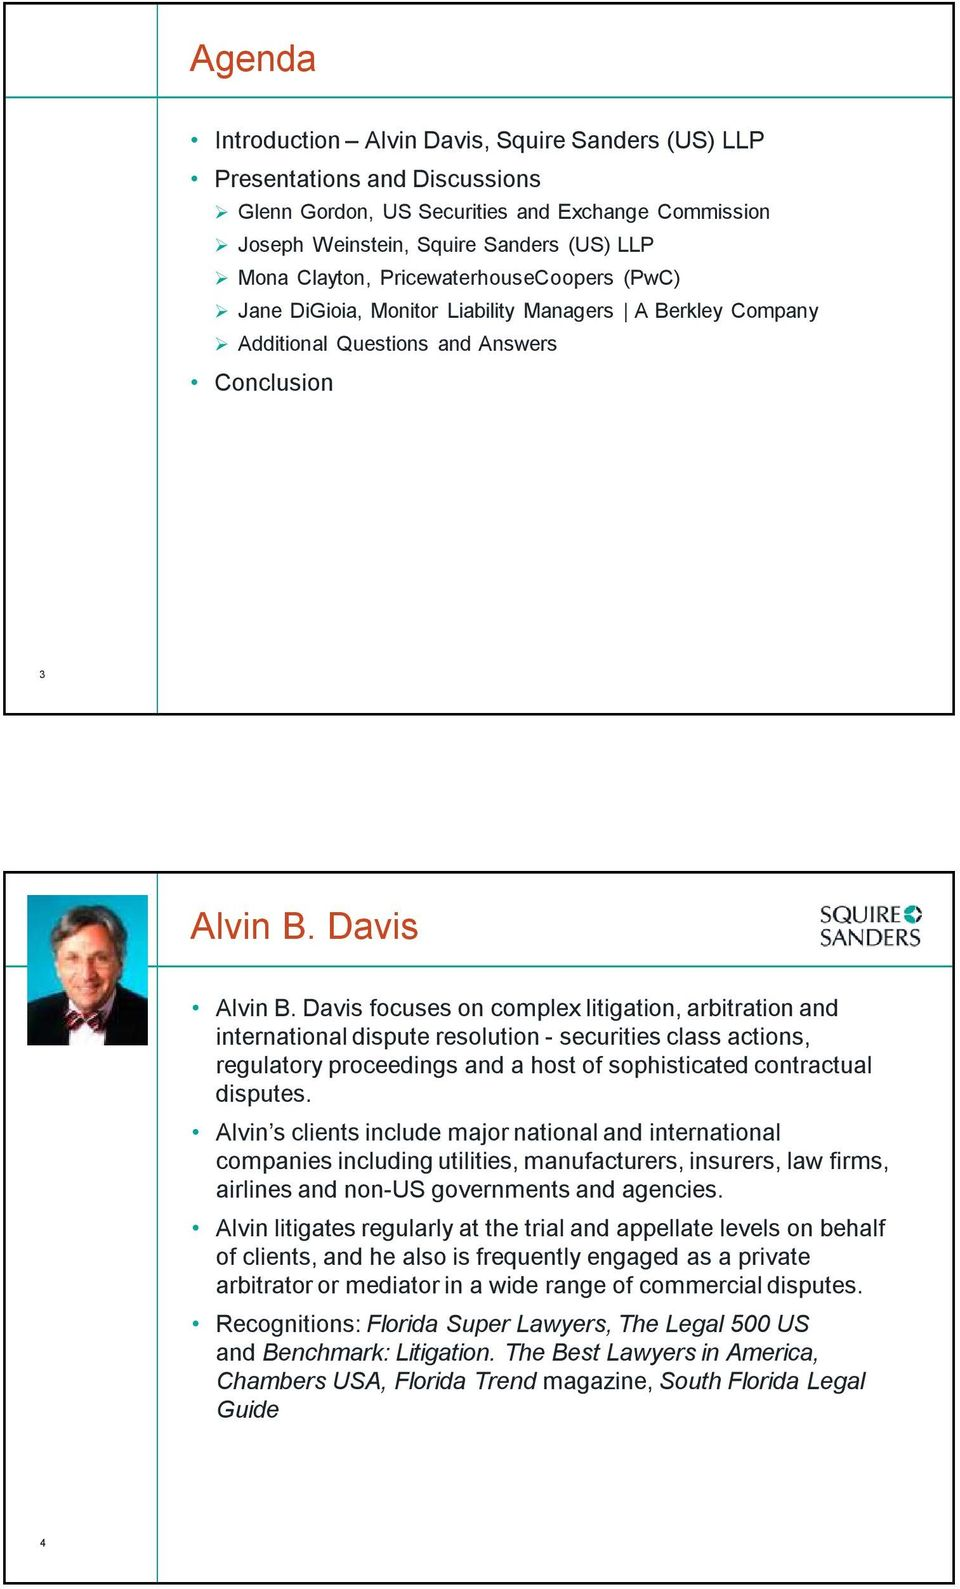 Davis focuses on complex litigation, arbitration and international dispute resolution - securities class actions, regulatory proceedings and a host of sophisticated contractual disputes.